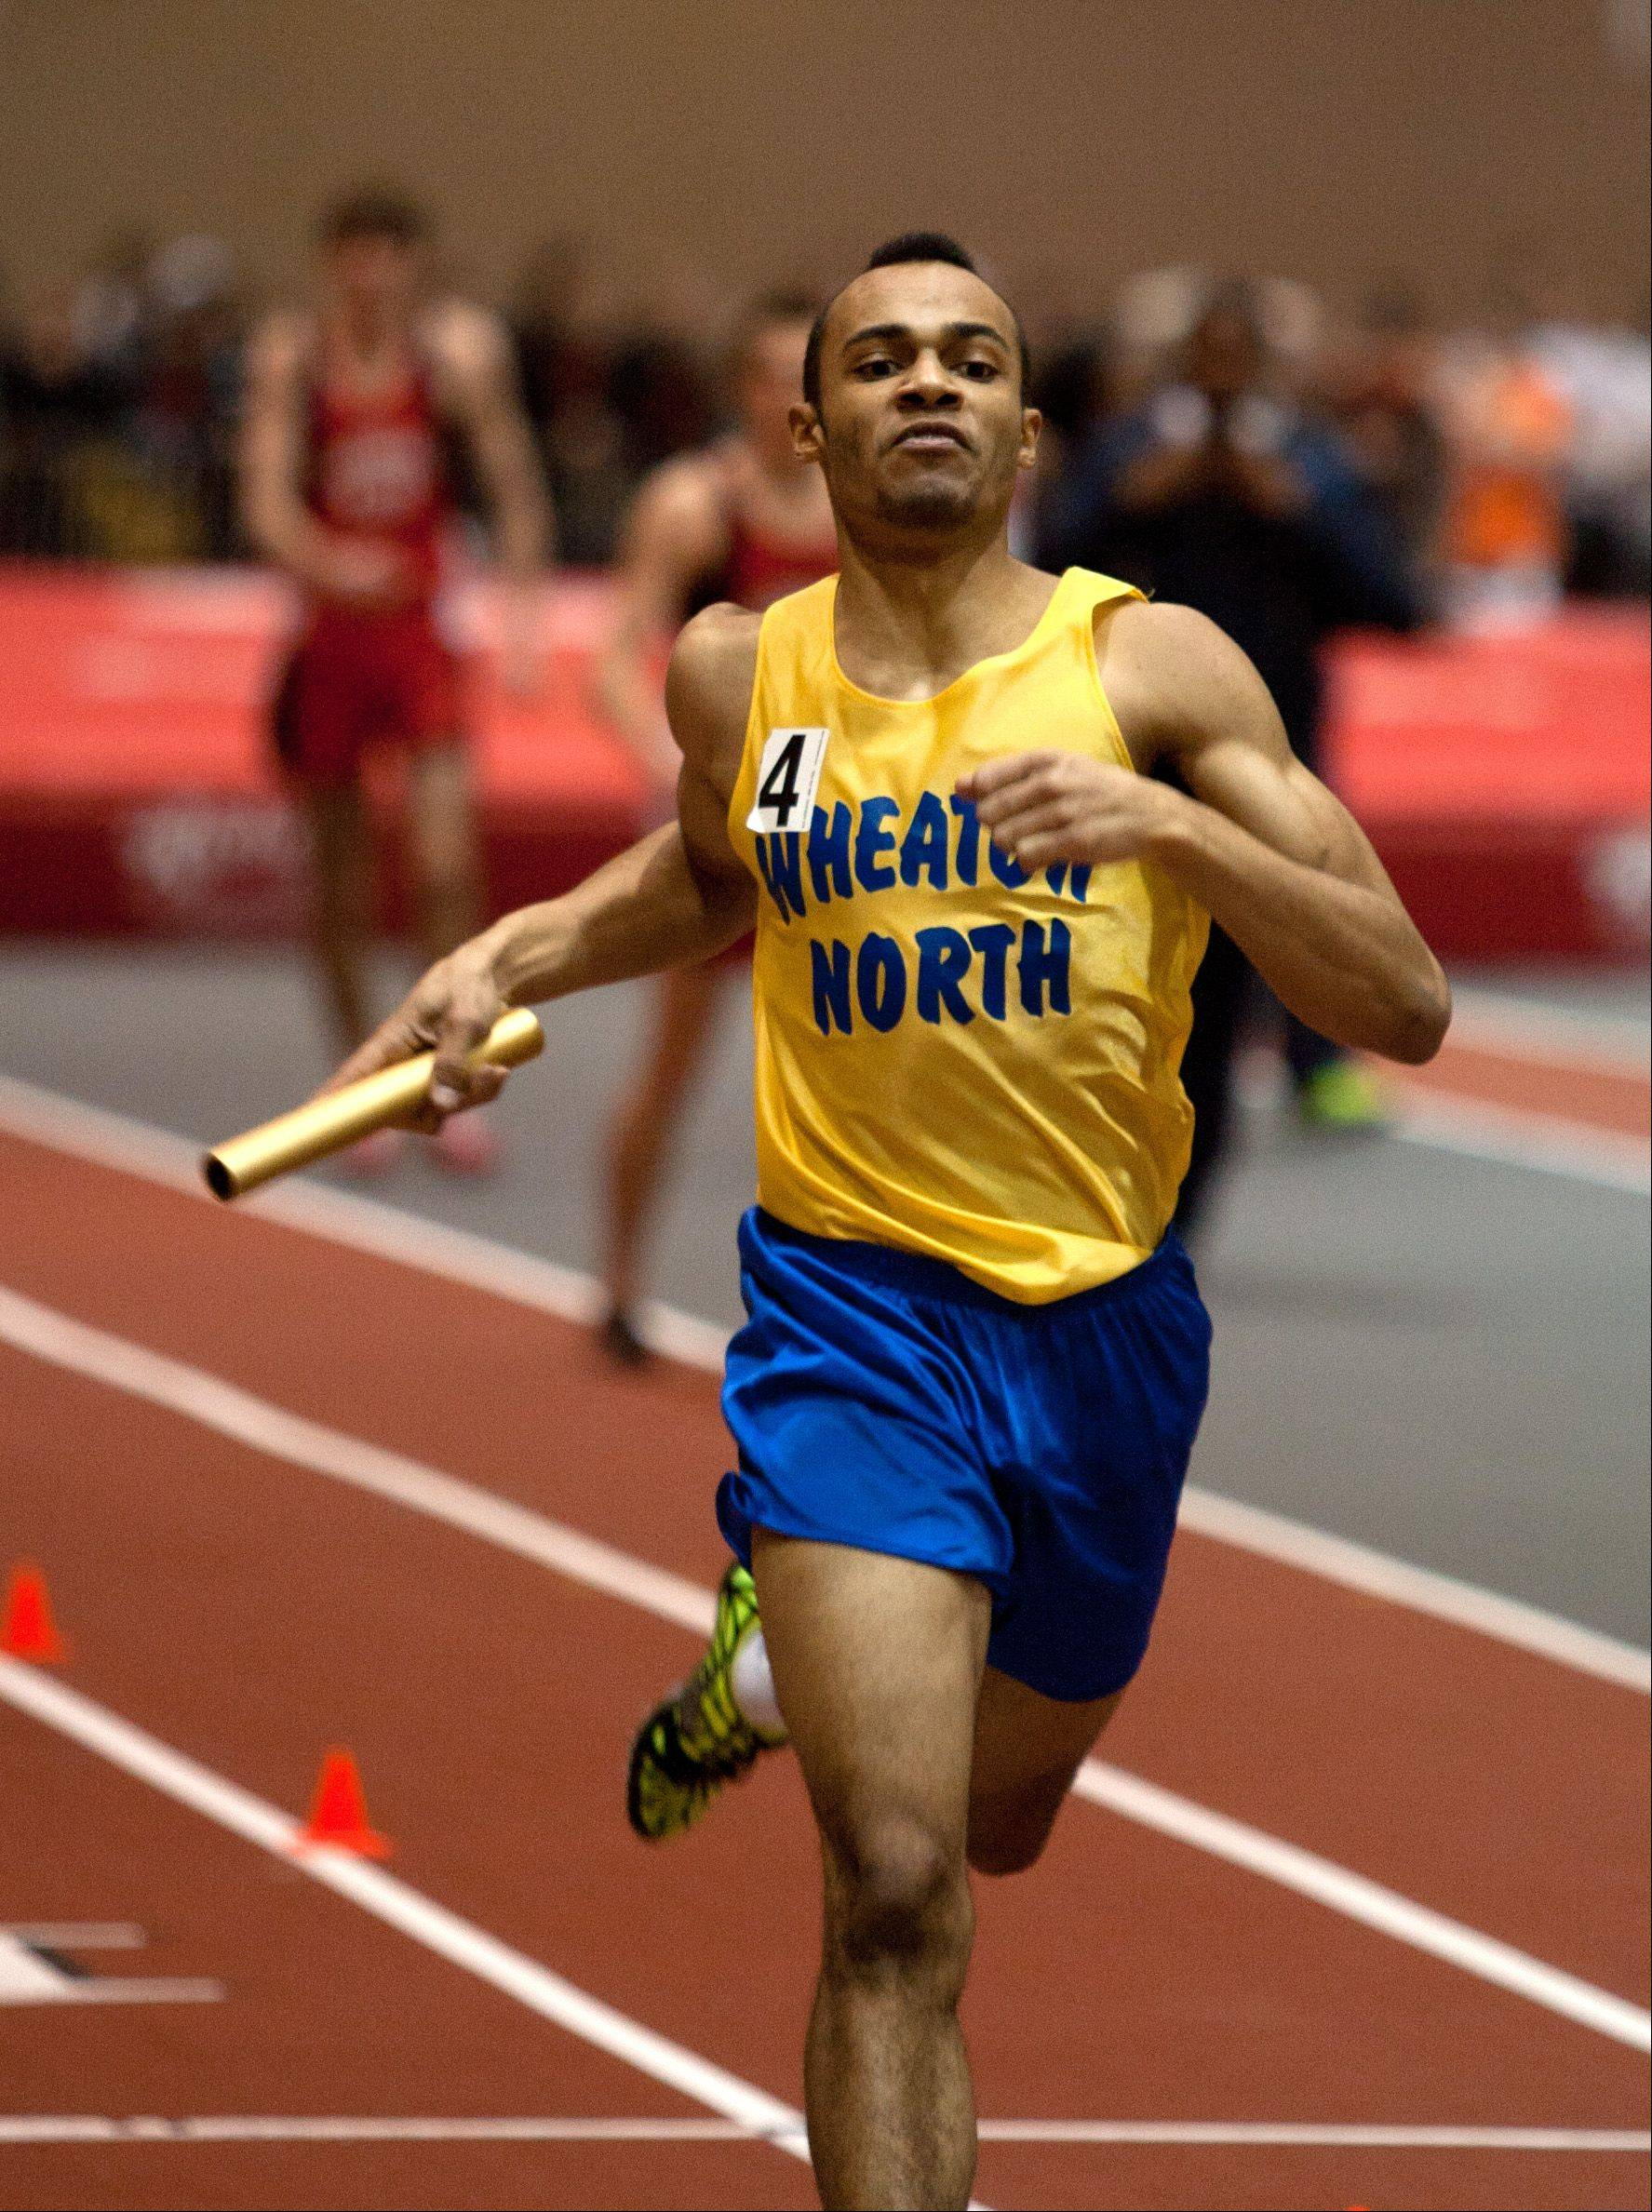 Wheaton North's Micaiah Steele anchors a 4 x400 meter win, during the DuPage Valley Conference boys track meet.